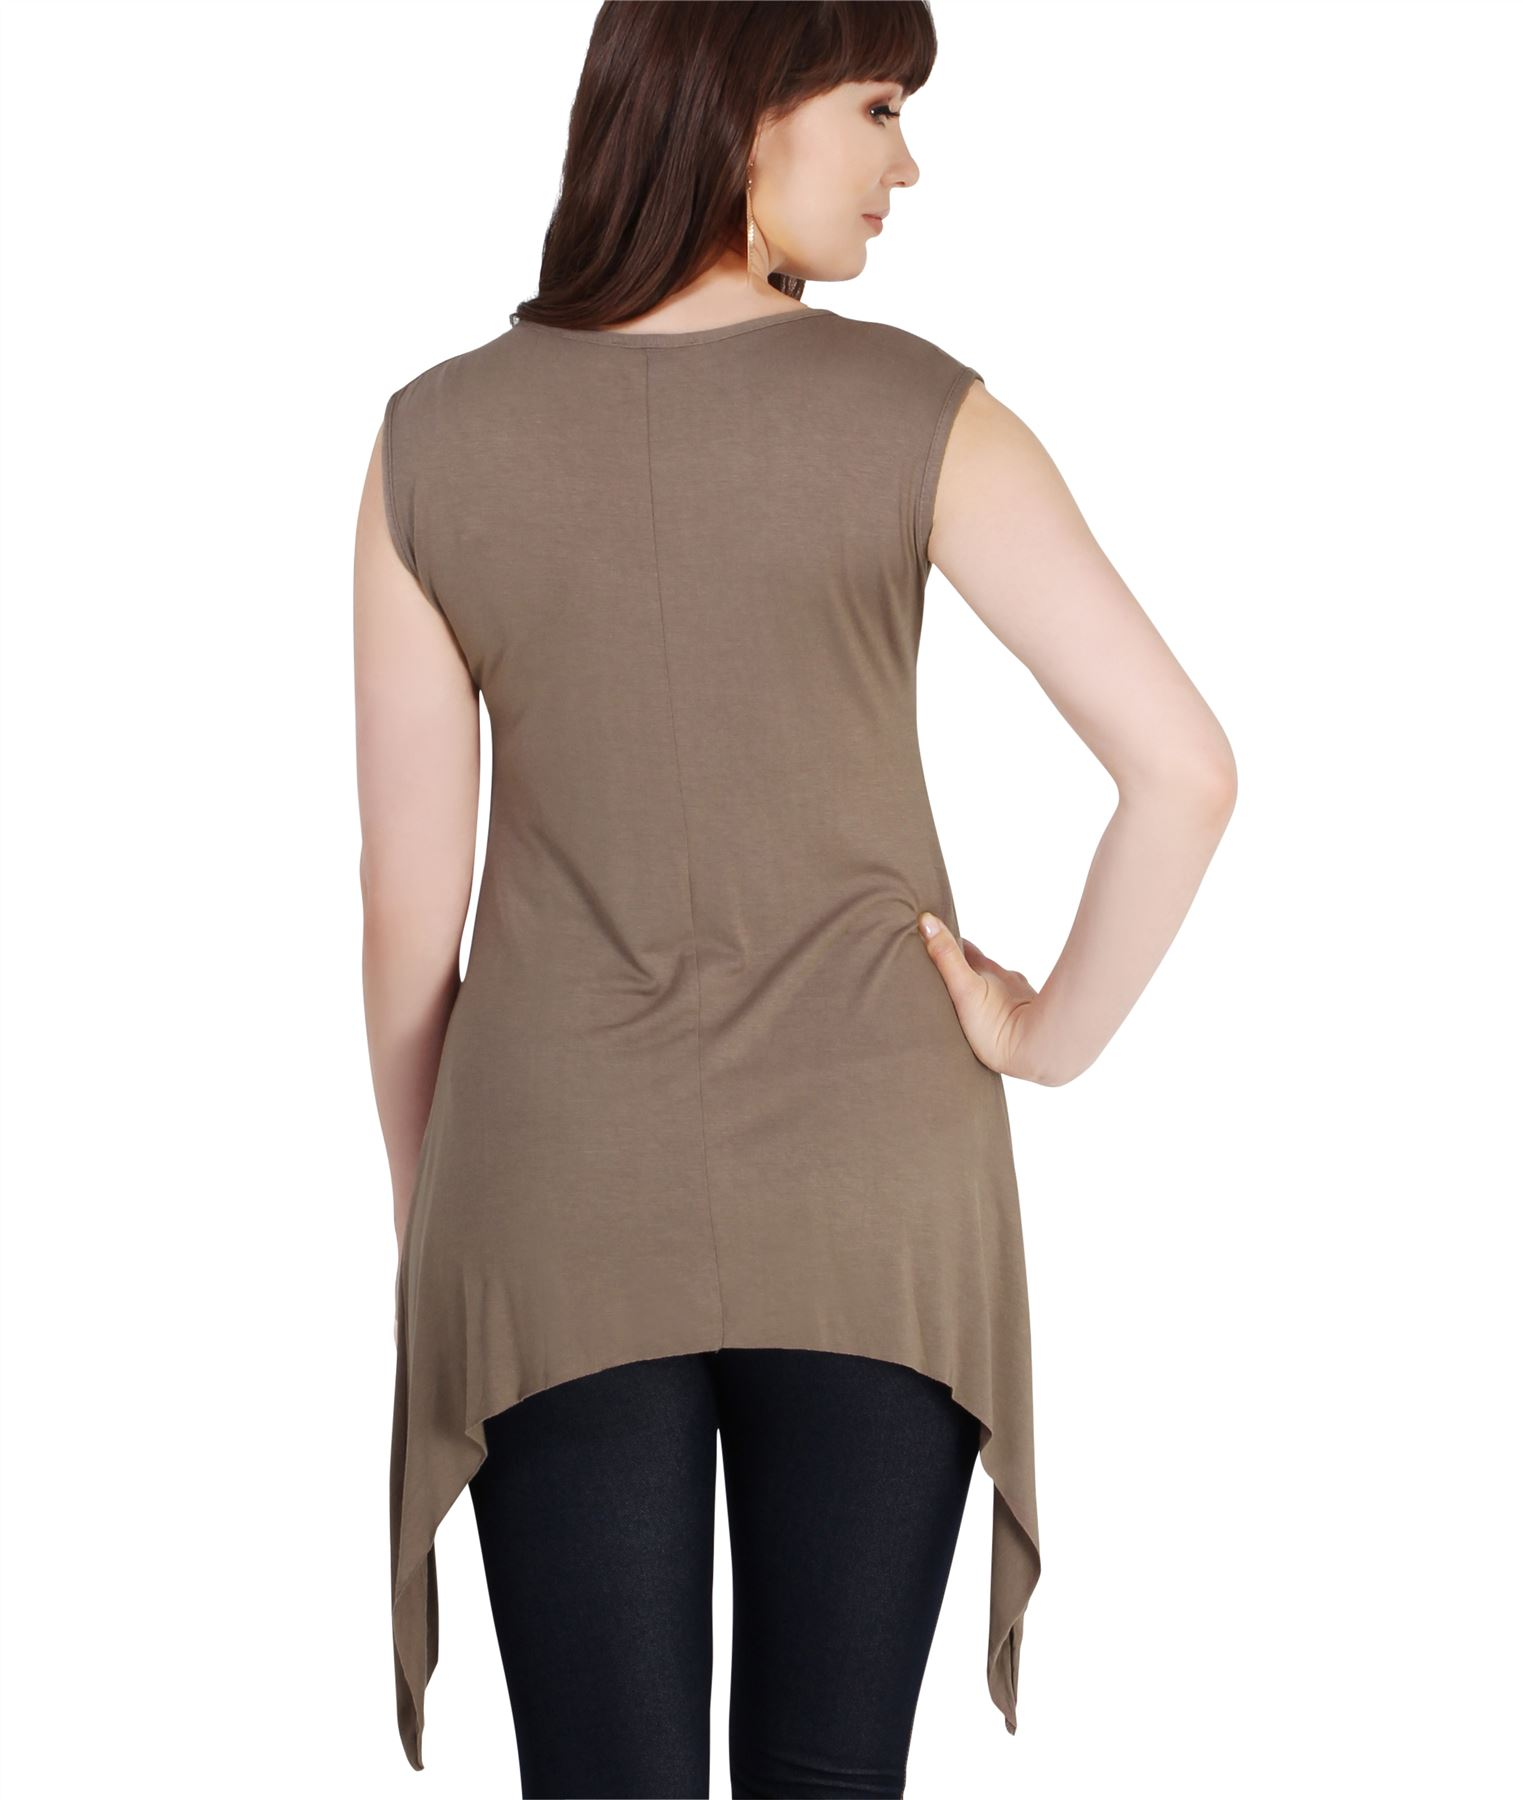 Women-Long-Top-Sleeveless-Pleated-Tee-Shirt-Tunic-Jersey-Stretch-Loose-Fit thumbnail 18